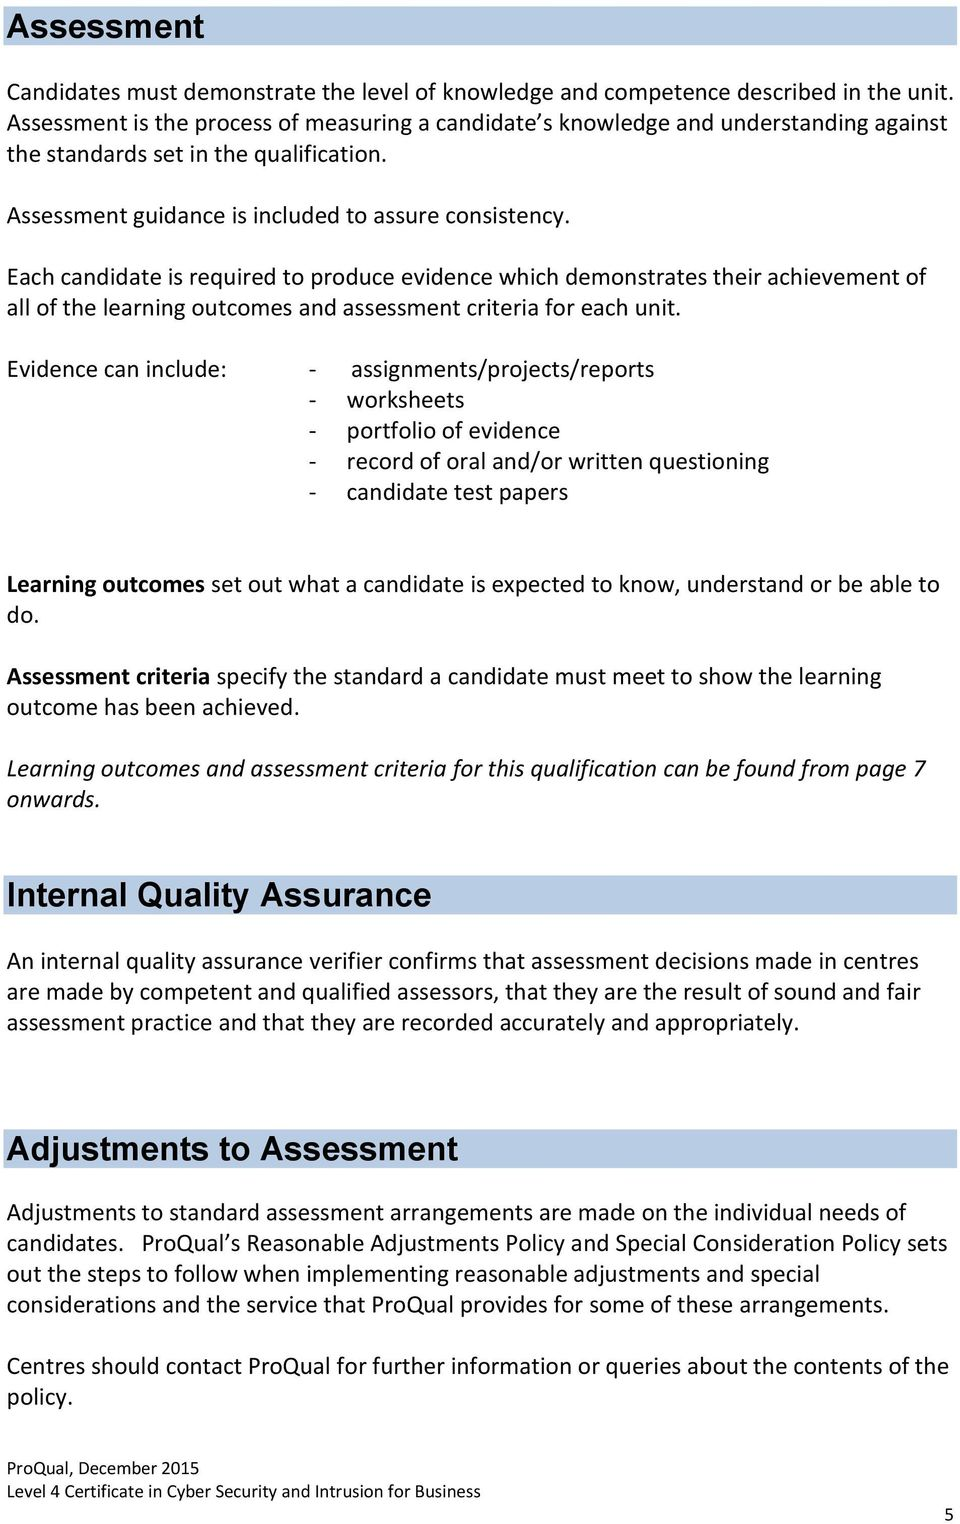 Each candidate is required to produce evidence which demonstrates their achievement of all of the learning outcomes and assessment criteria for each unit.